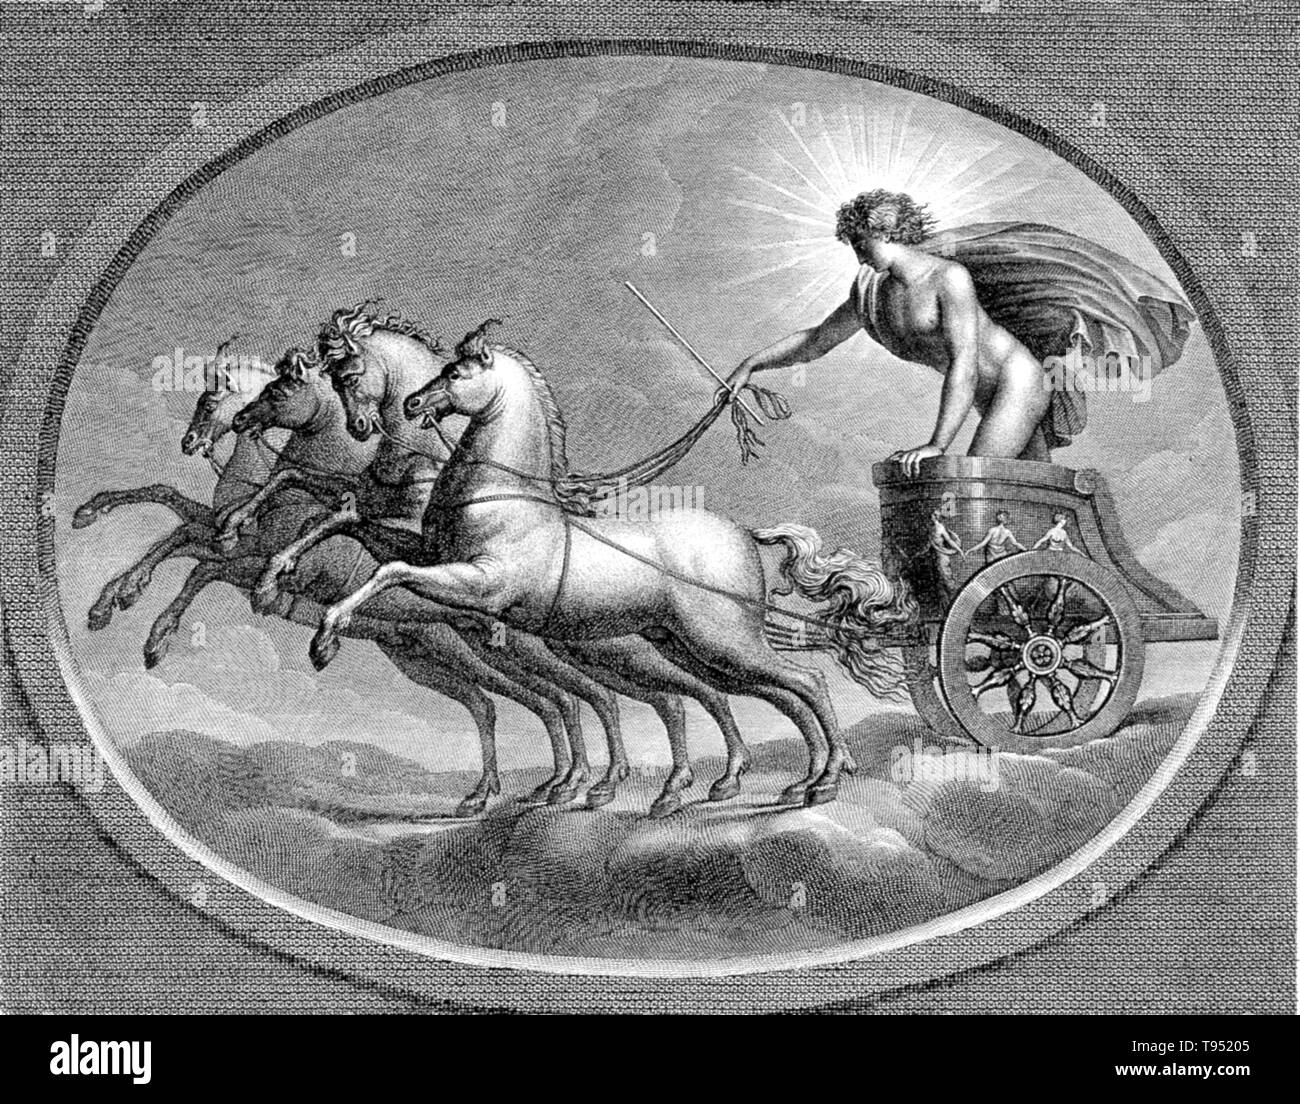 Sol in his chariot, riding across the heavens. Sol was the solar deity in Ancient Roman religion. It was long thought that Rome actually had two different, consecutive sun gods. The first, Sol Indiges, was thought to have been unimportant, disappearing altogether at an early period. Only in the late Roman Empire, scholars argued, did solar cult re-appear with the arrival in Rome of the Syrian Sol Invictus, perhaps under the influence of the Mithraic mysteries. Today, SOL is still the main word for sun in Romance languages. SOL is used in contemporary English by astronomers and many science fic - Stock Image